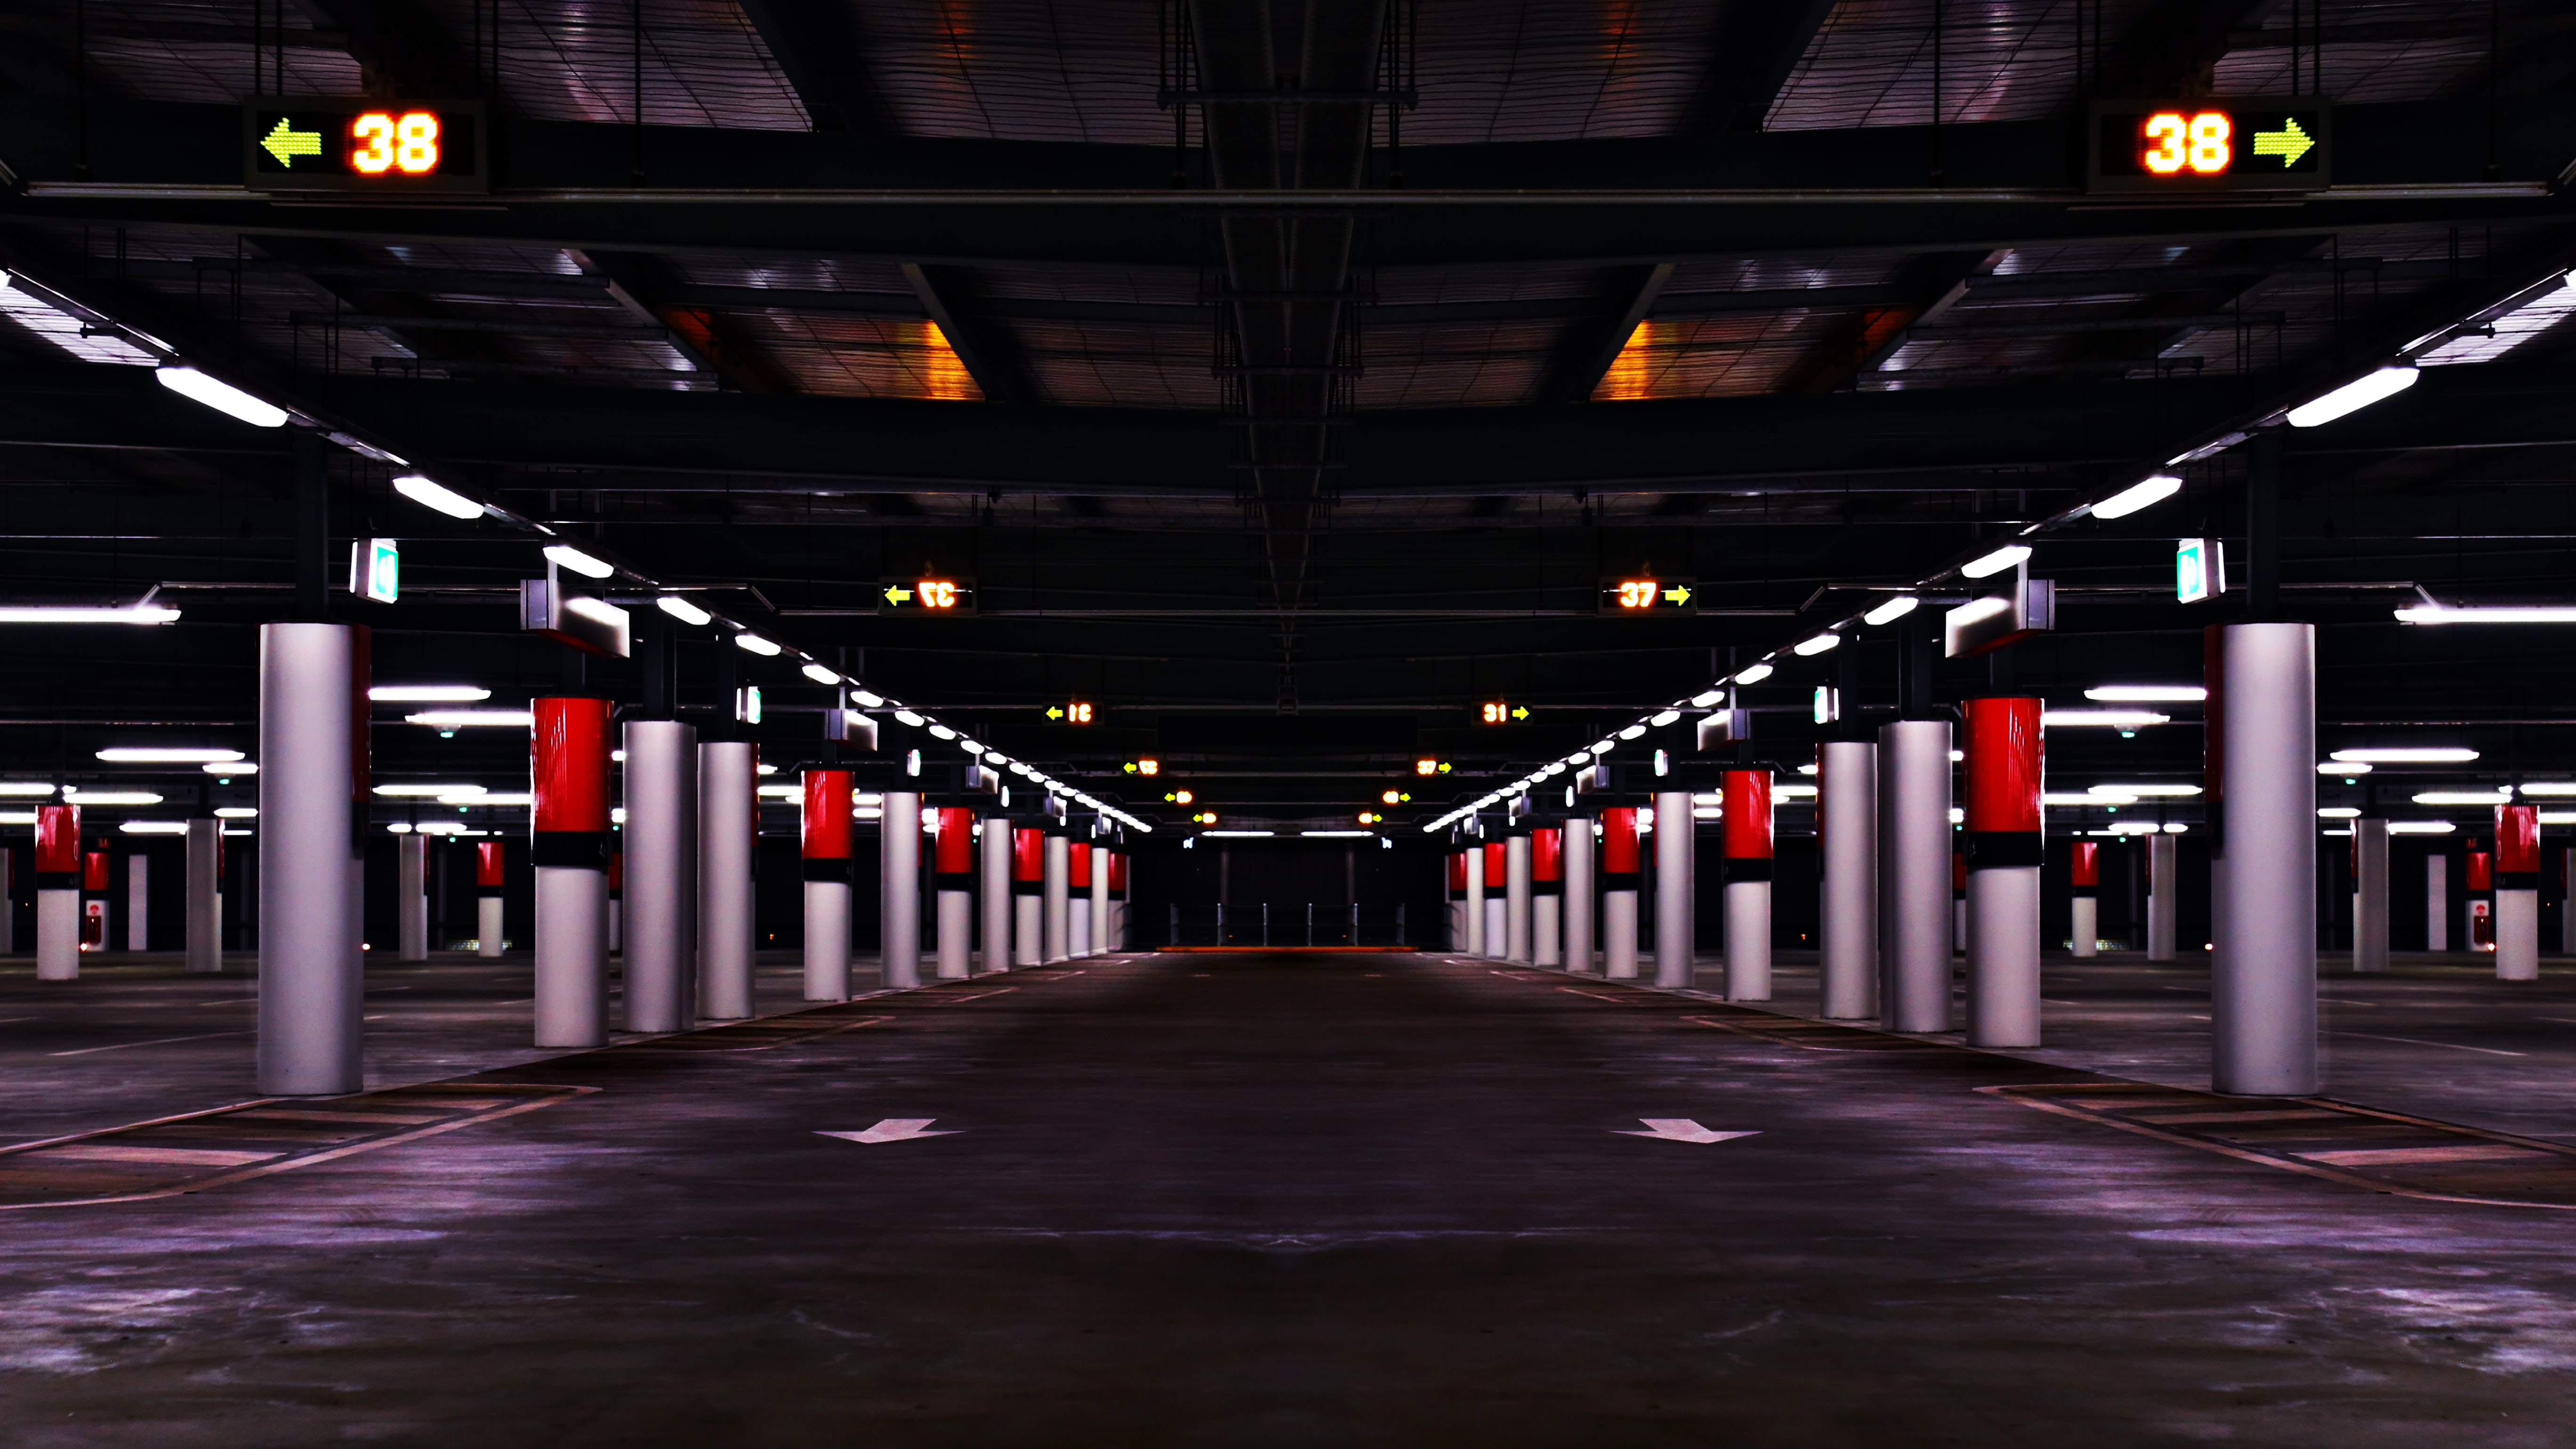 Columns form patterns and lines in an underground parking structure